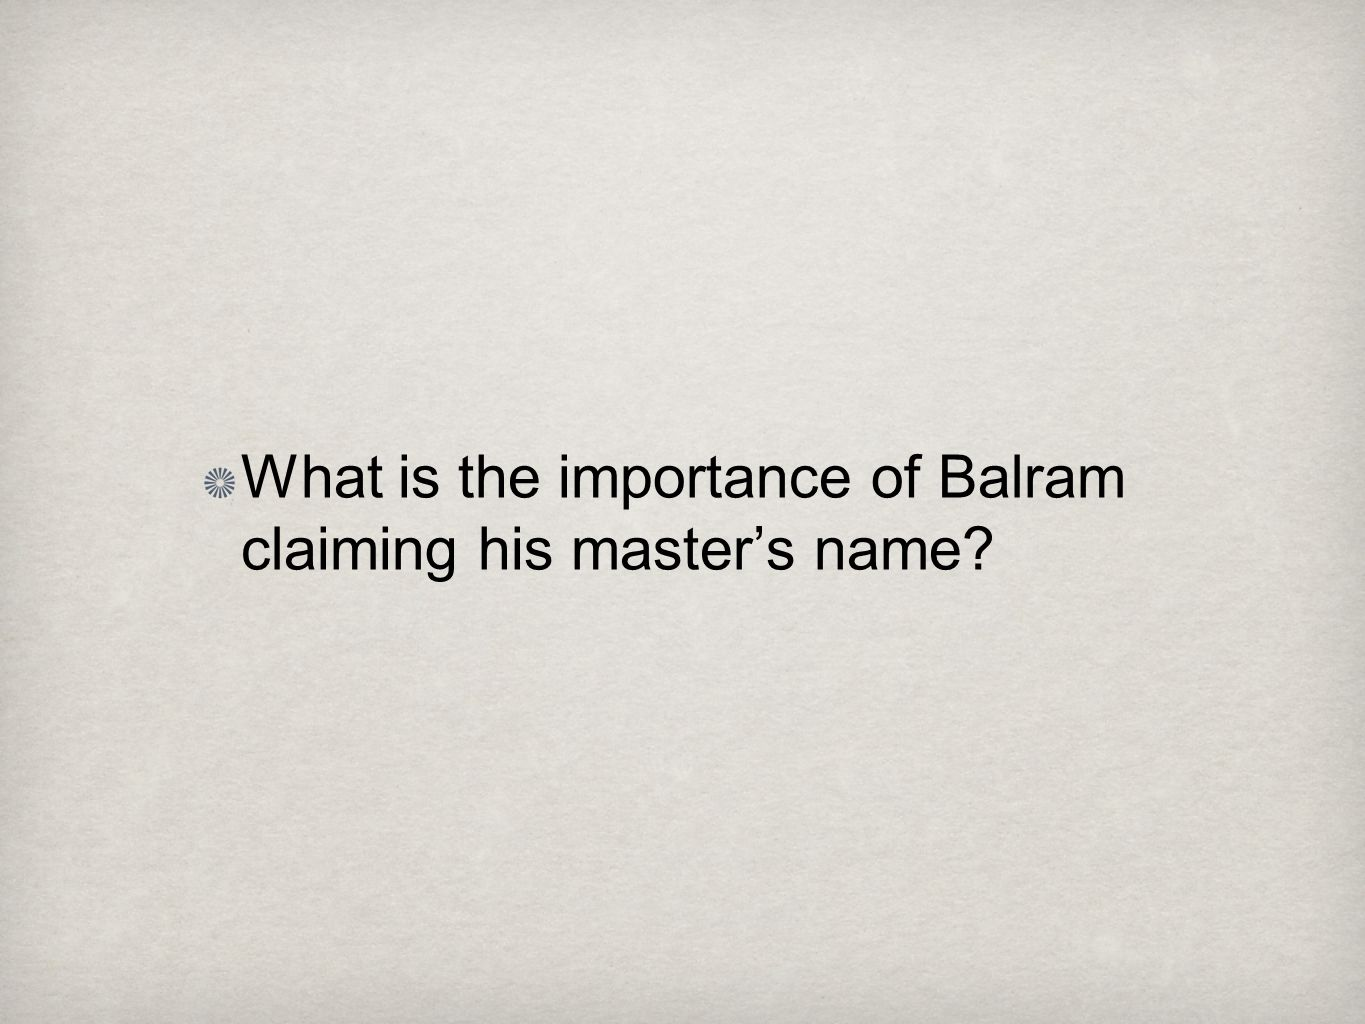 What is the importance of Balram claiming his master's name